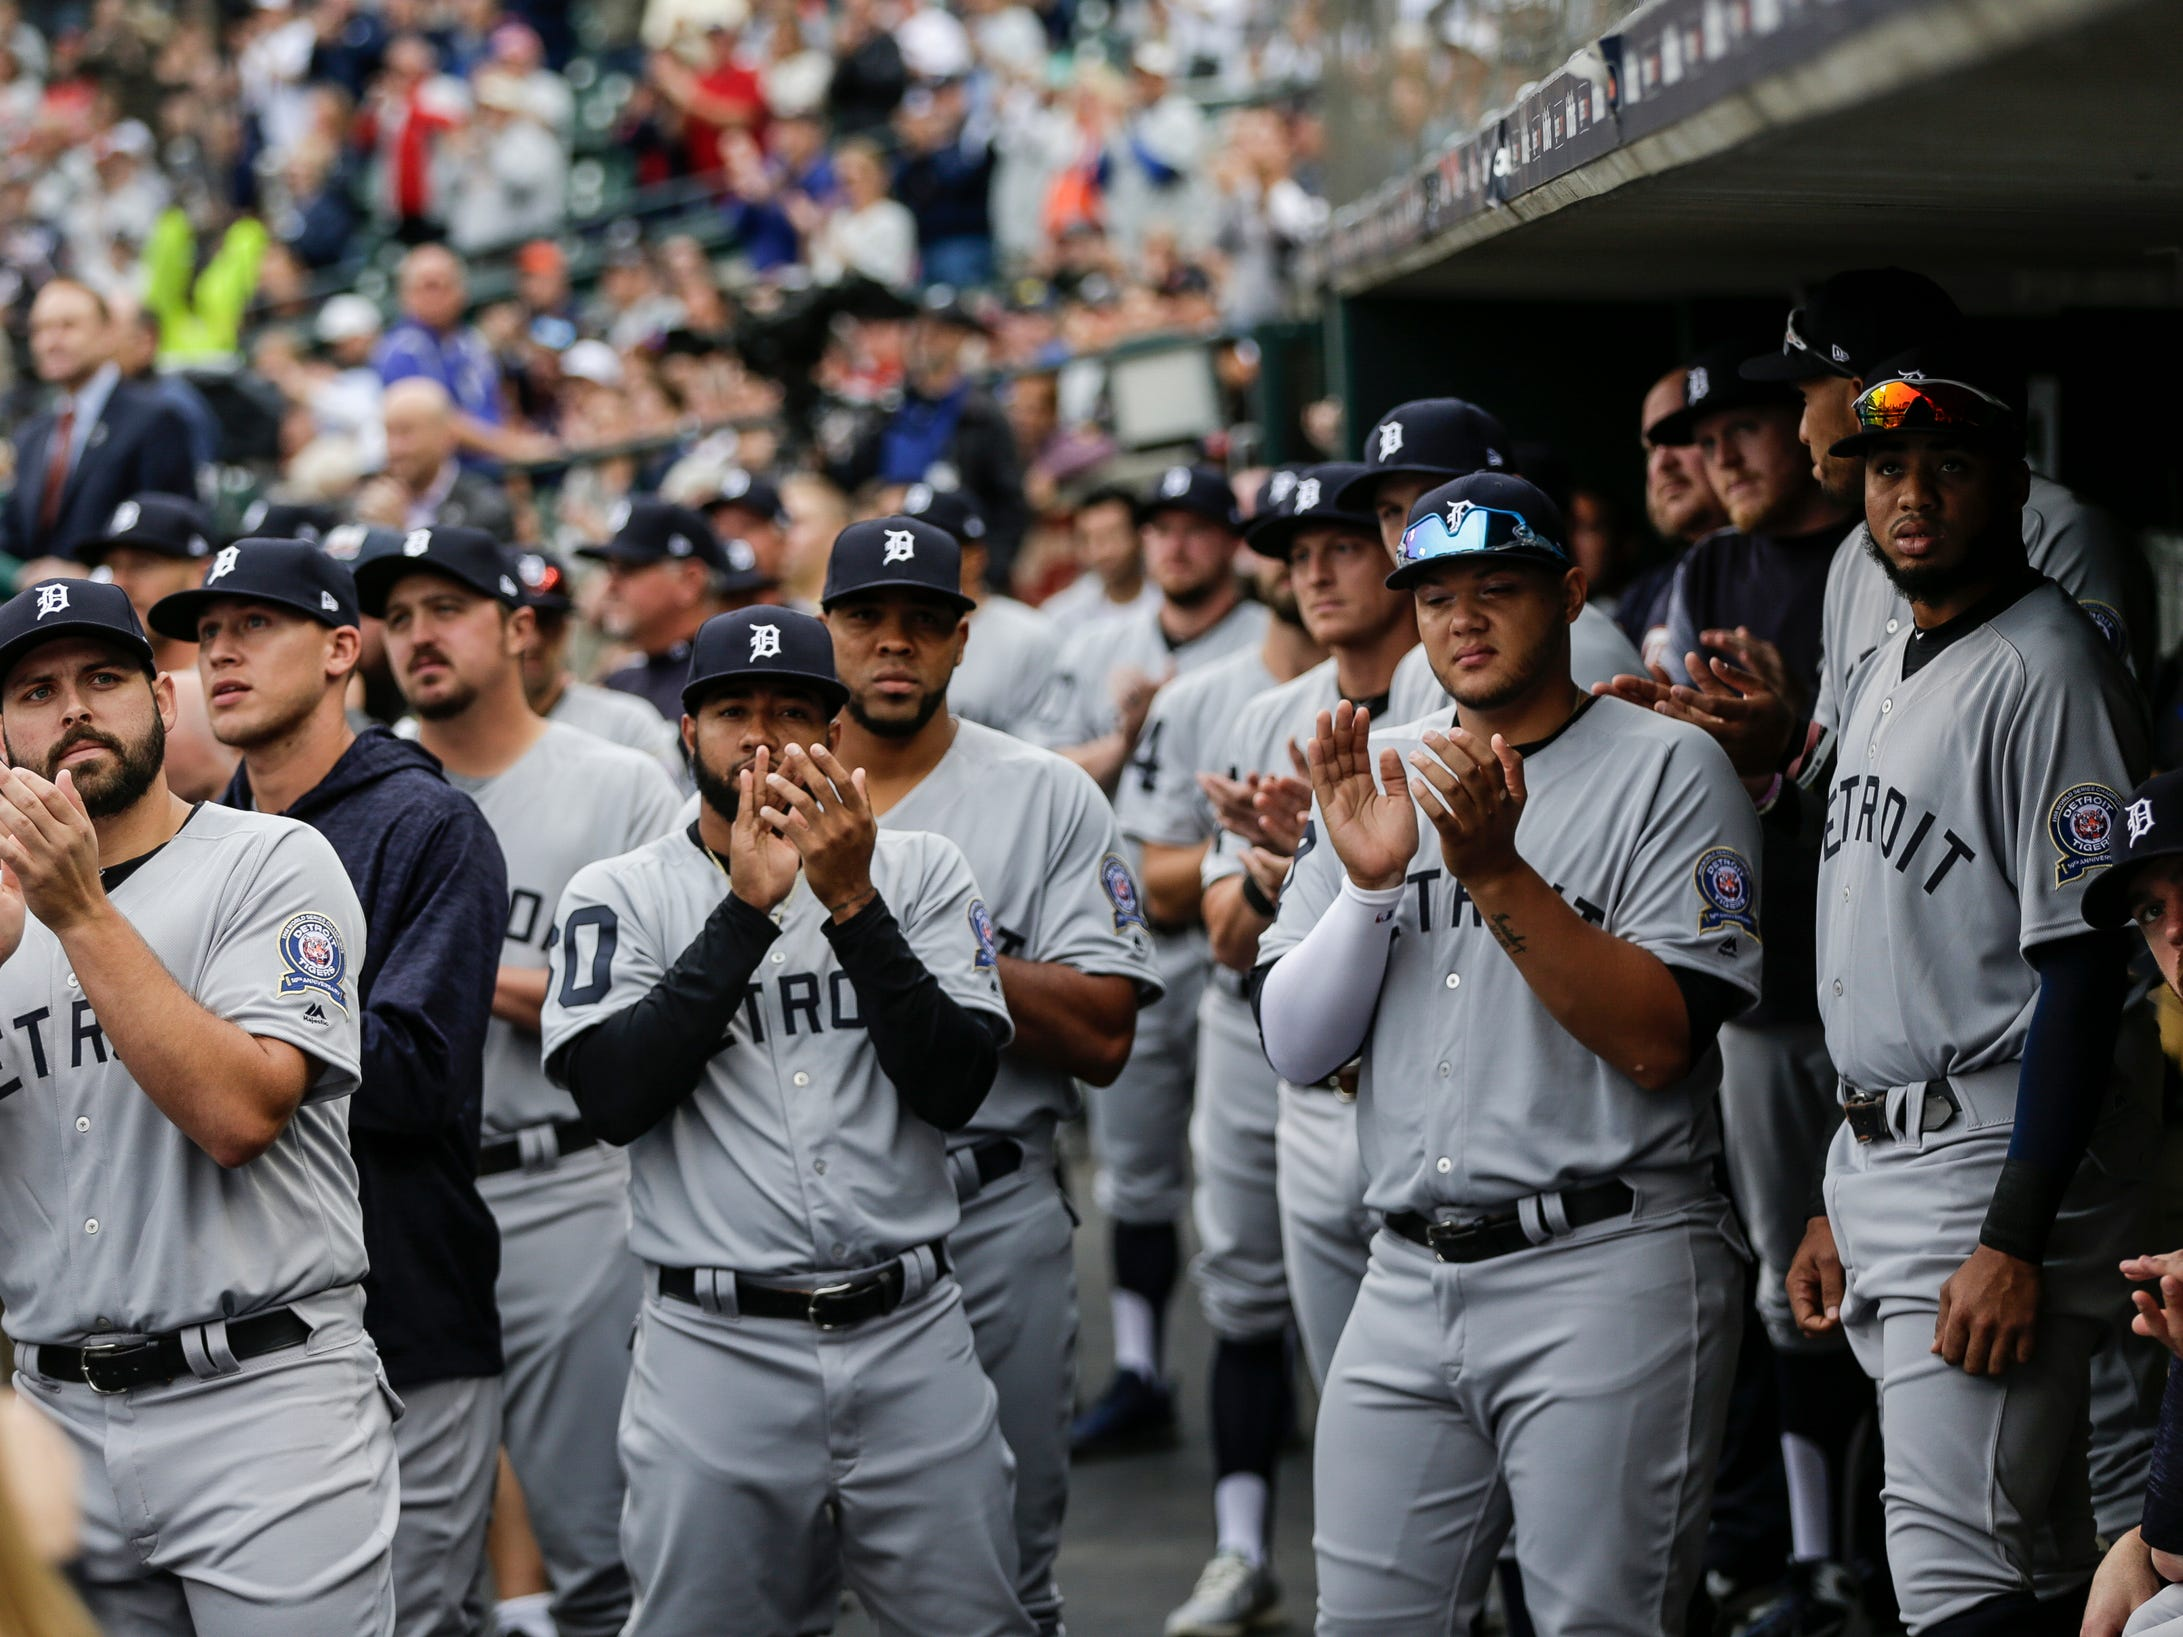 Current Detroit Tigers players clap as they watch 14 members of the 1968 World Series championship team be honored during the celebration of the 50th anniversary of the 1968 World Series championship at Comerica Park in Detroit, Saturday, Sept. 8, 2018.